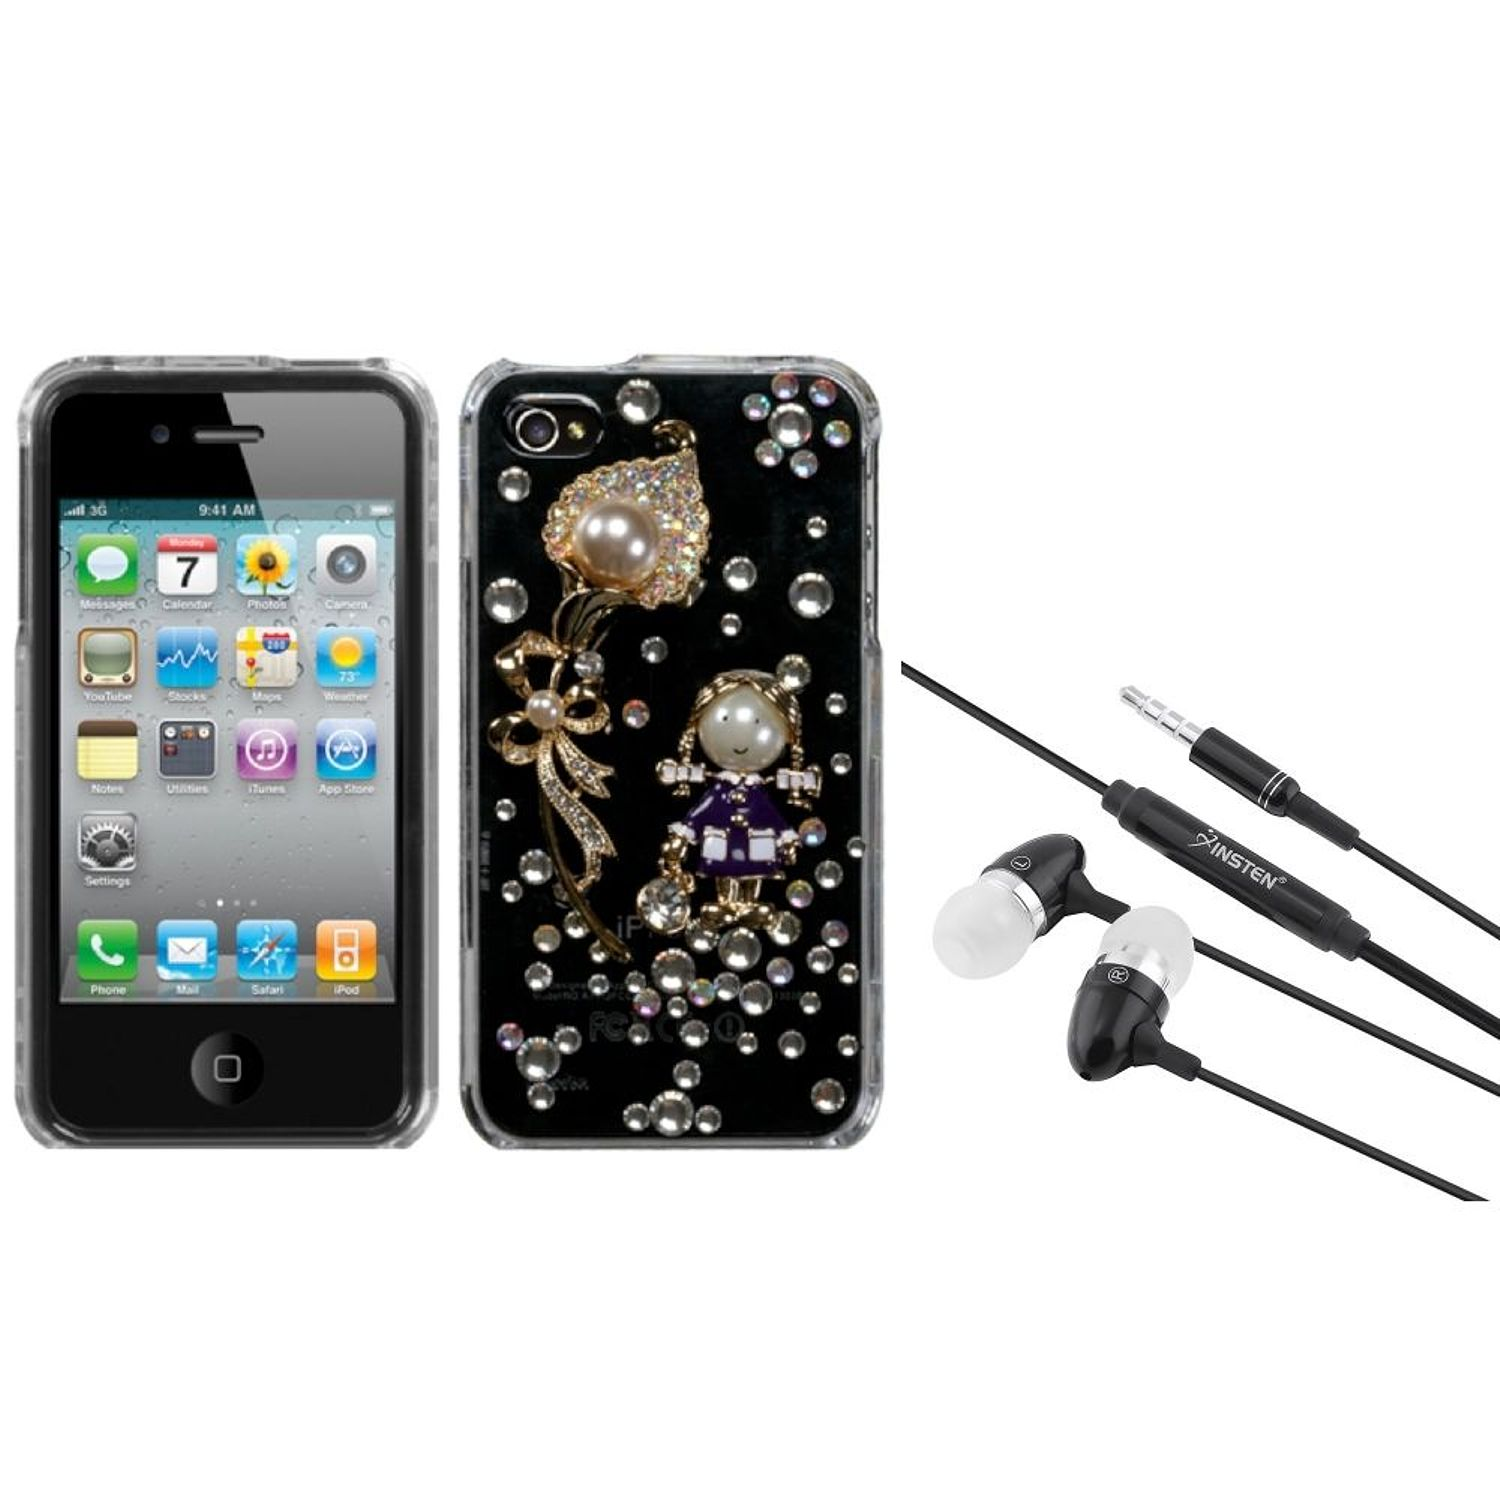 Insten Debby Diamond/The Pearl Flower Crystal 3D Diamante Case For iPhone 4 4S + 3.5mm Headset